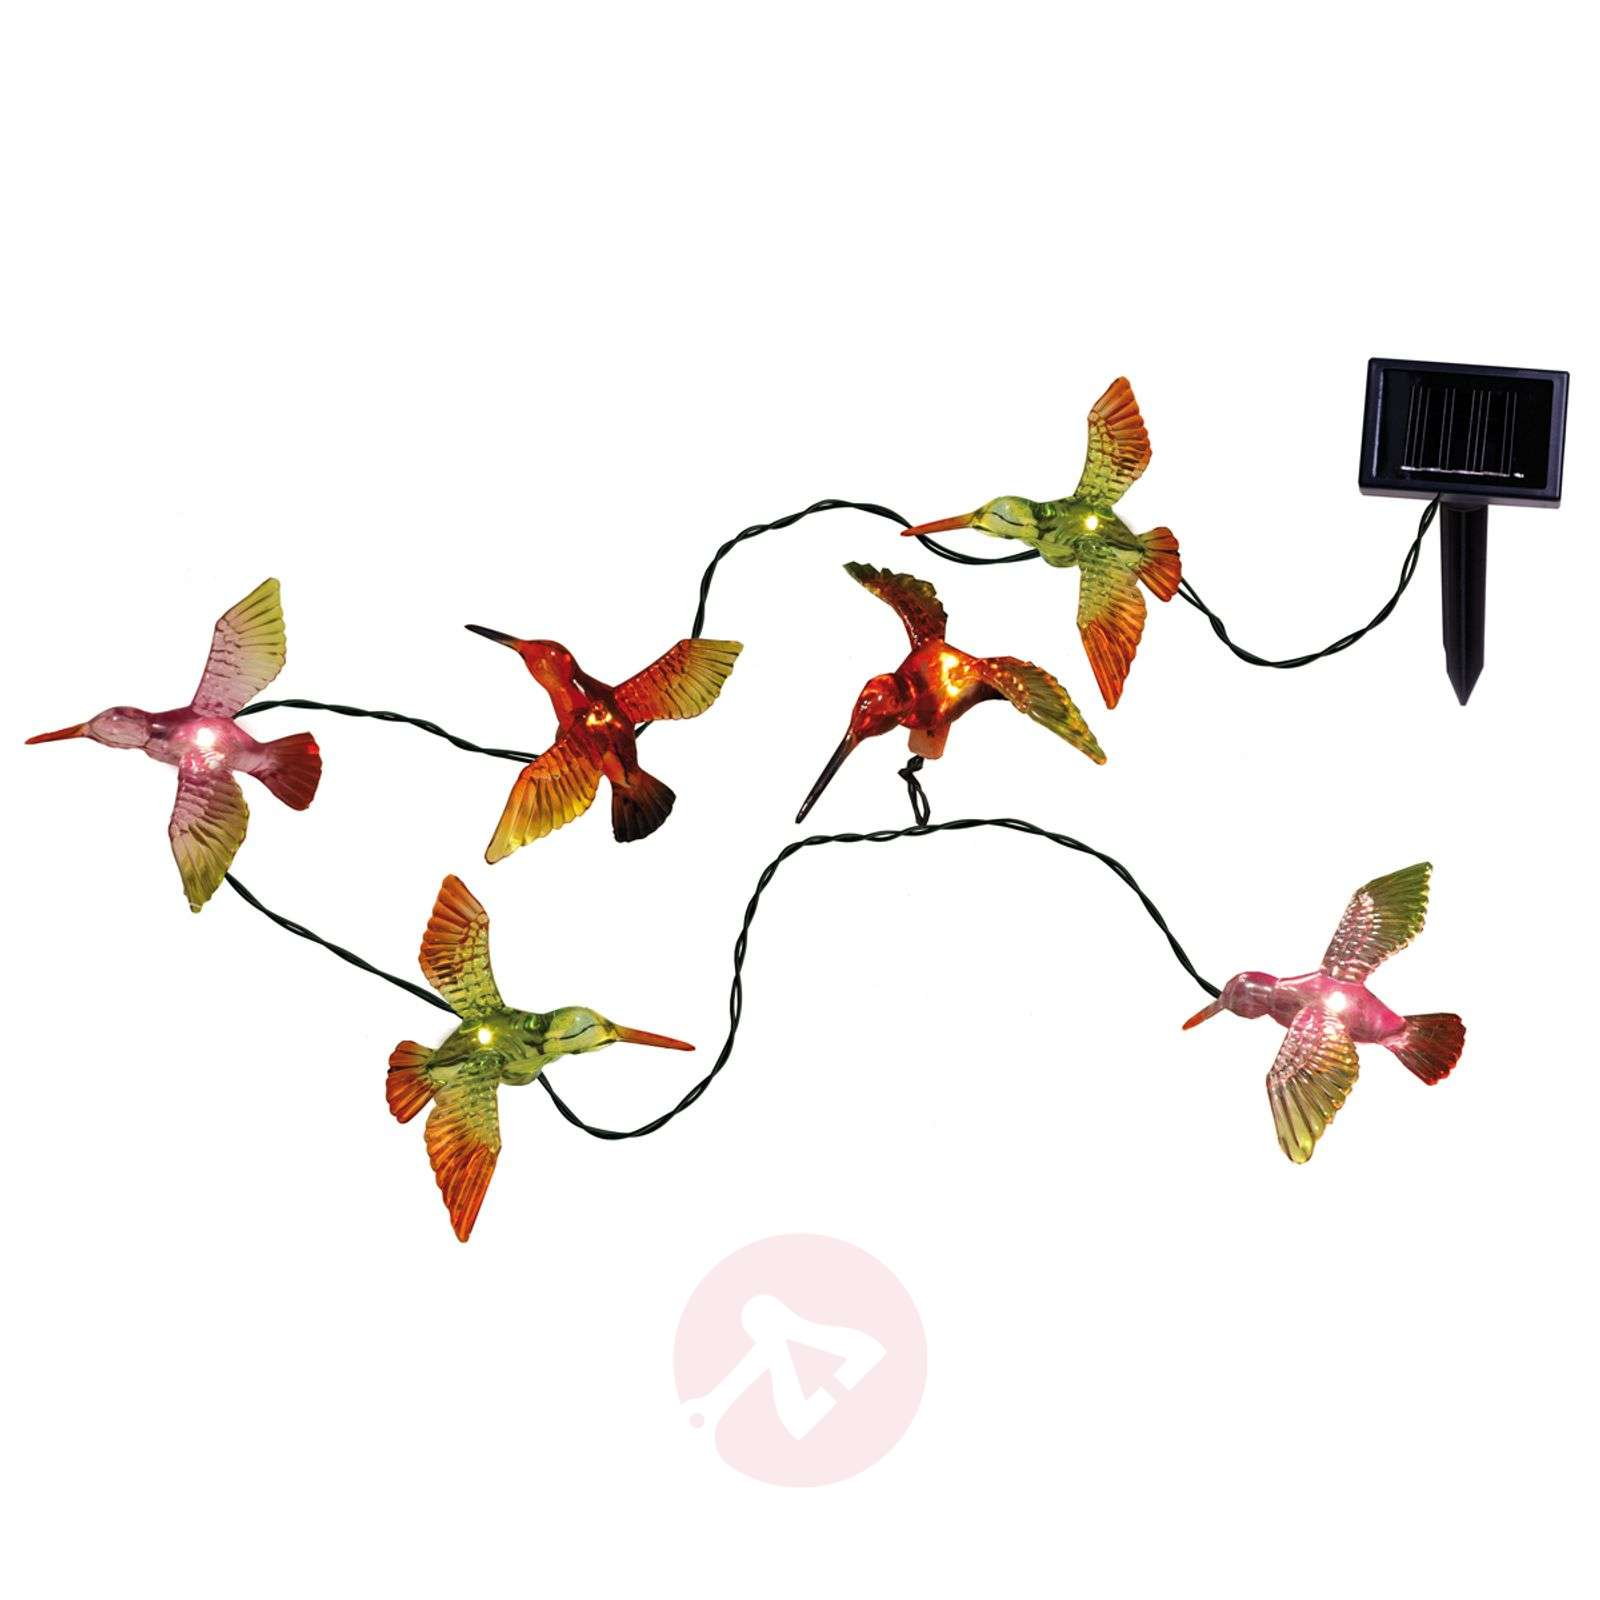 Guirlande lumineuse solaire Bird à 6 lampes-1522459-03